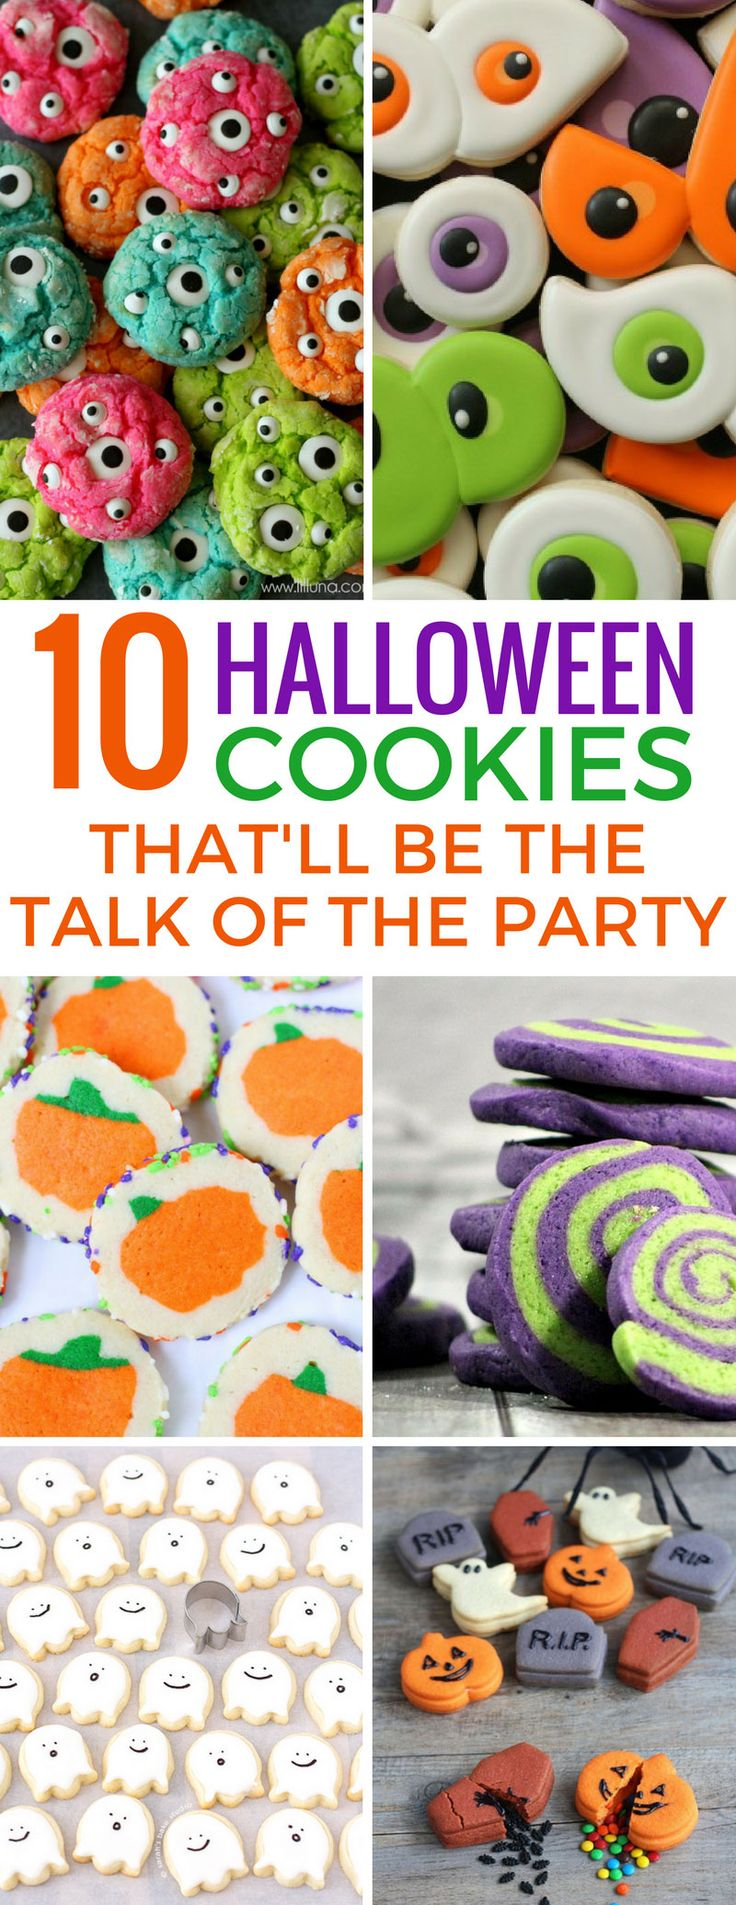 Loving these easy Halloween cookies for kids - especially those ghost cookies! Thanks for sharing!